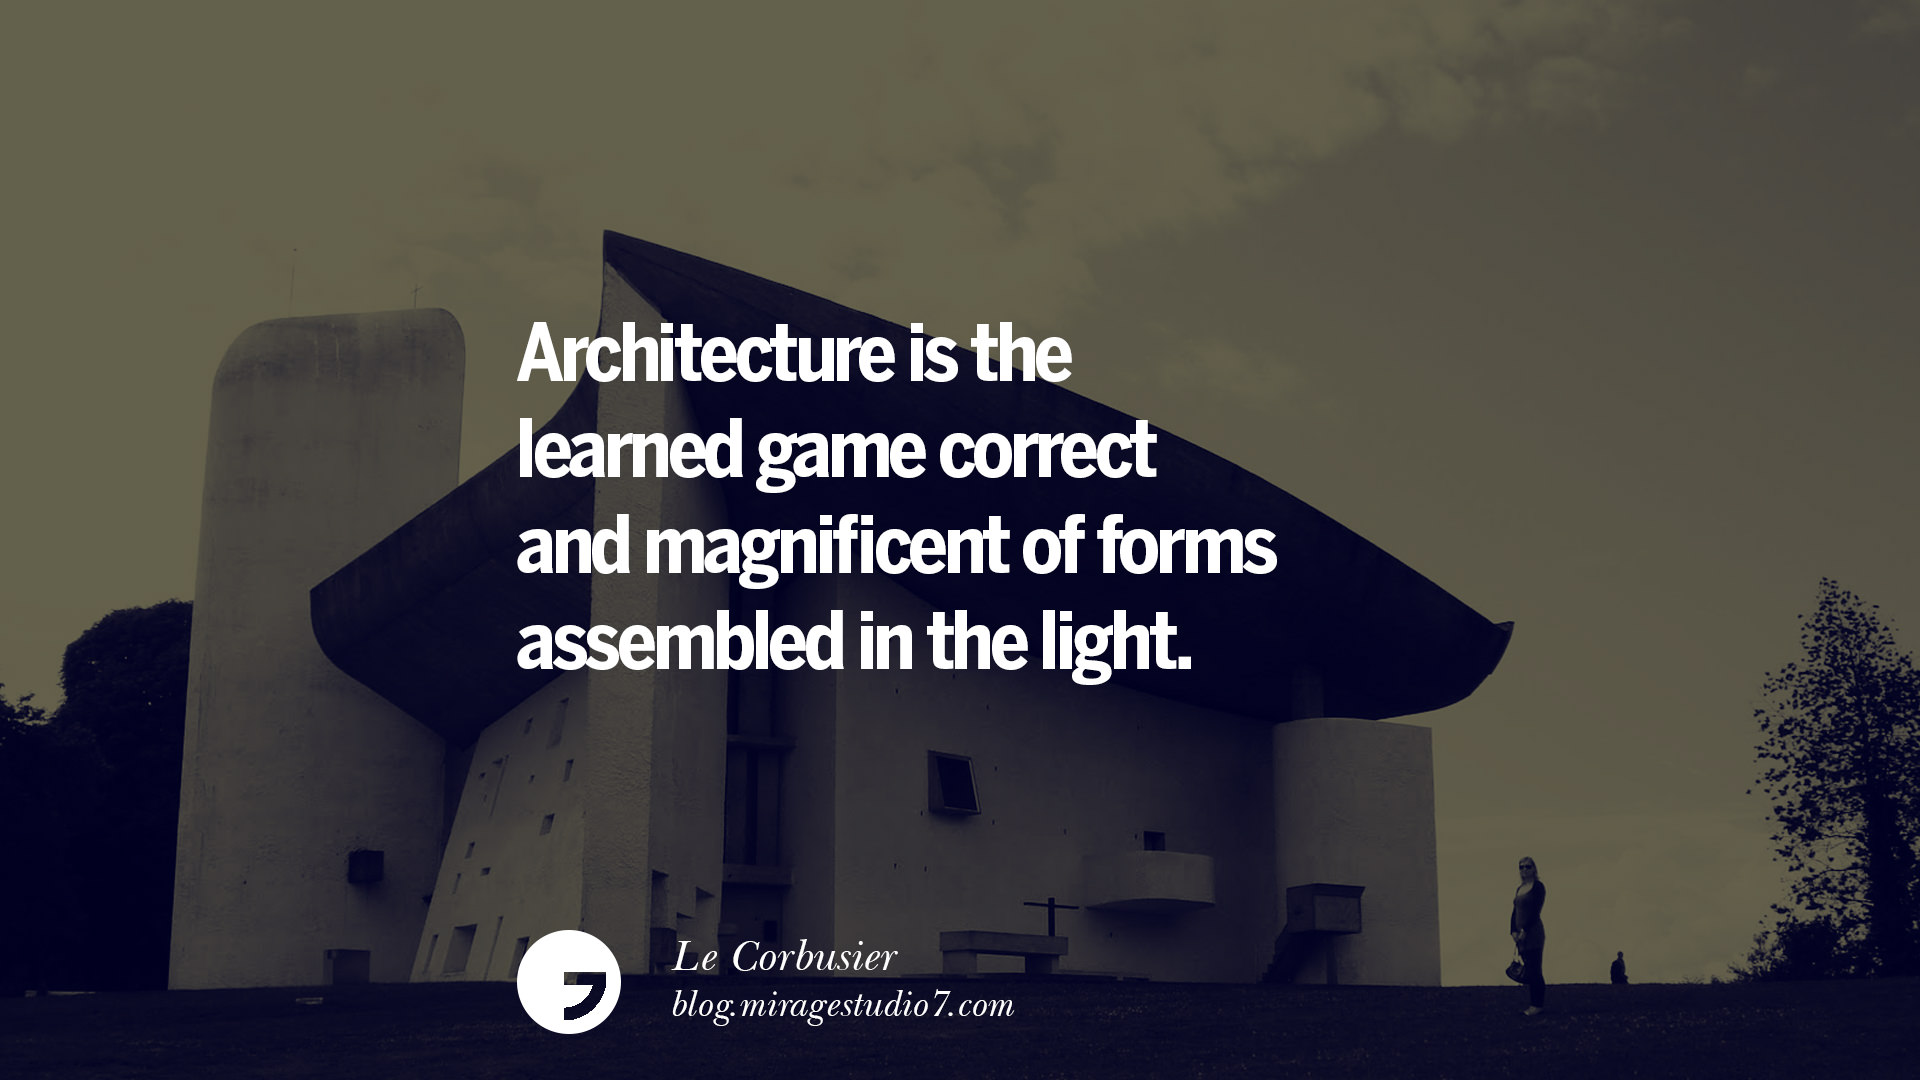 28 inspirational architecture quotes by famous architects and interior designers - Greatest Architect In The World